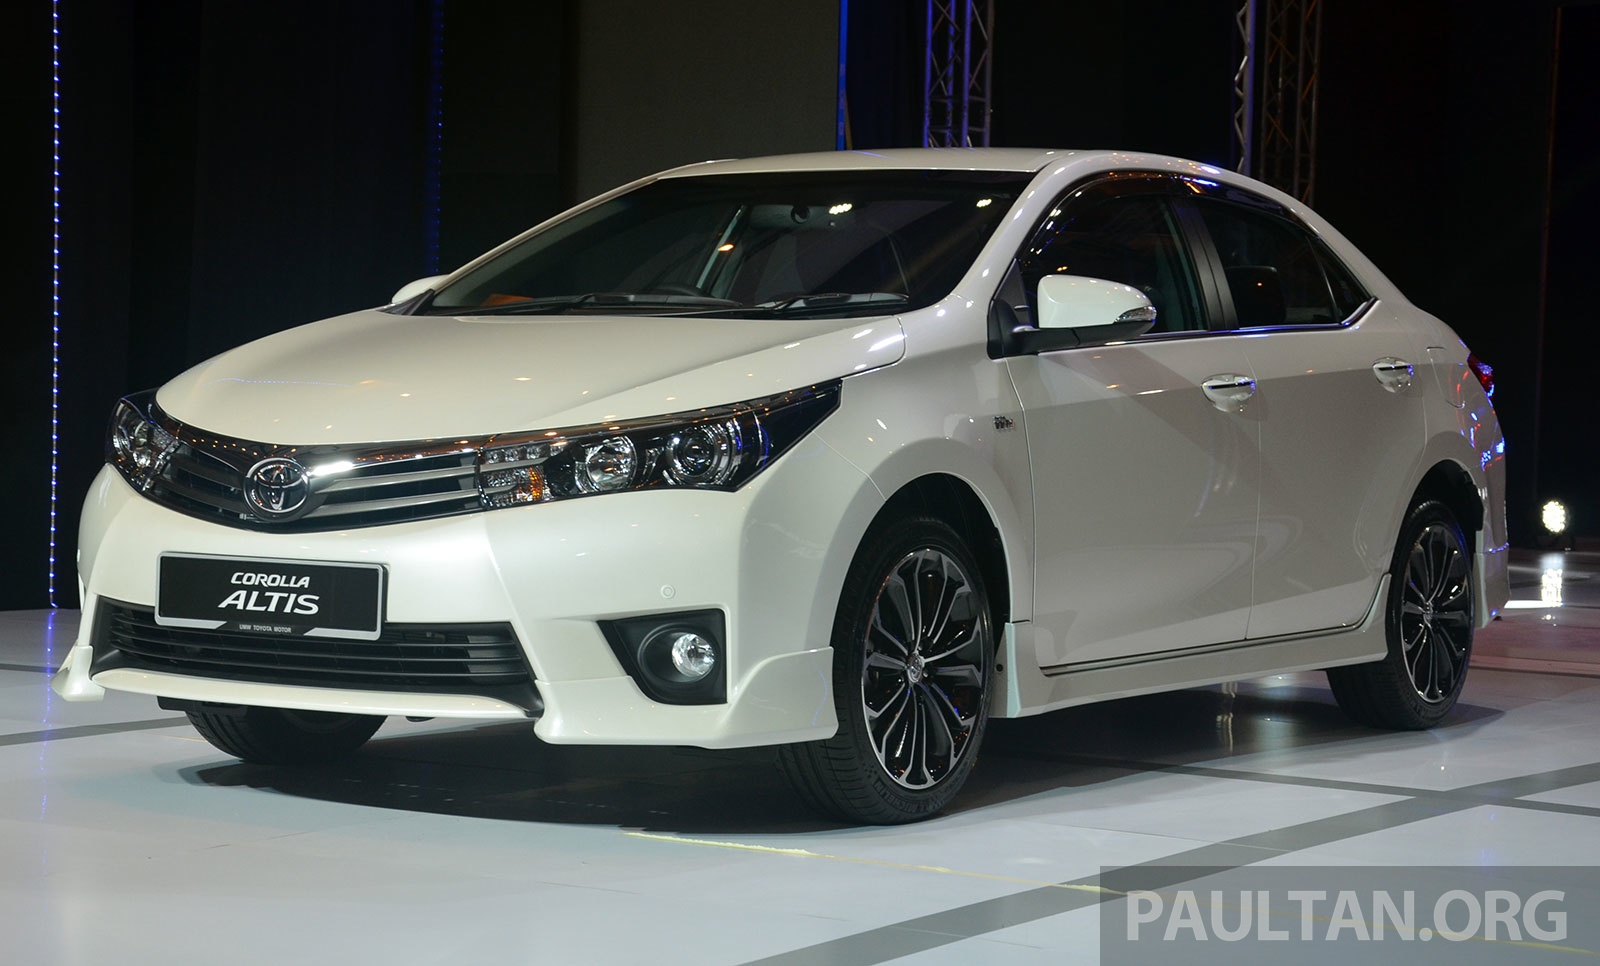 2014 toyota corolla altis officially launched image 223127